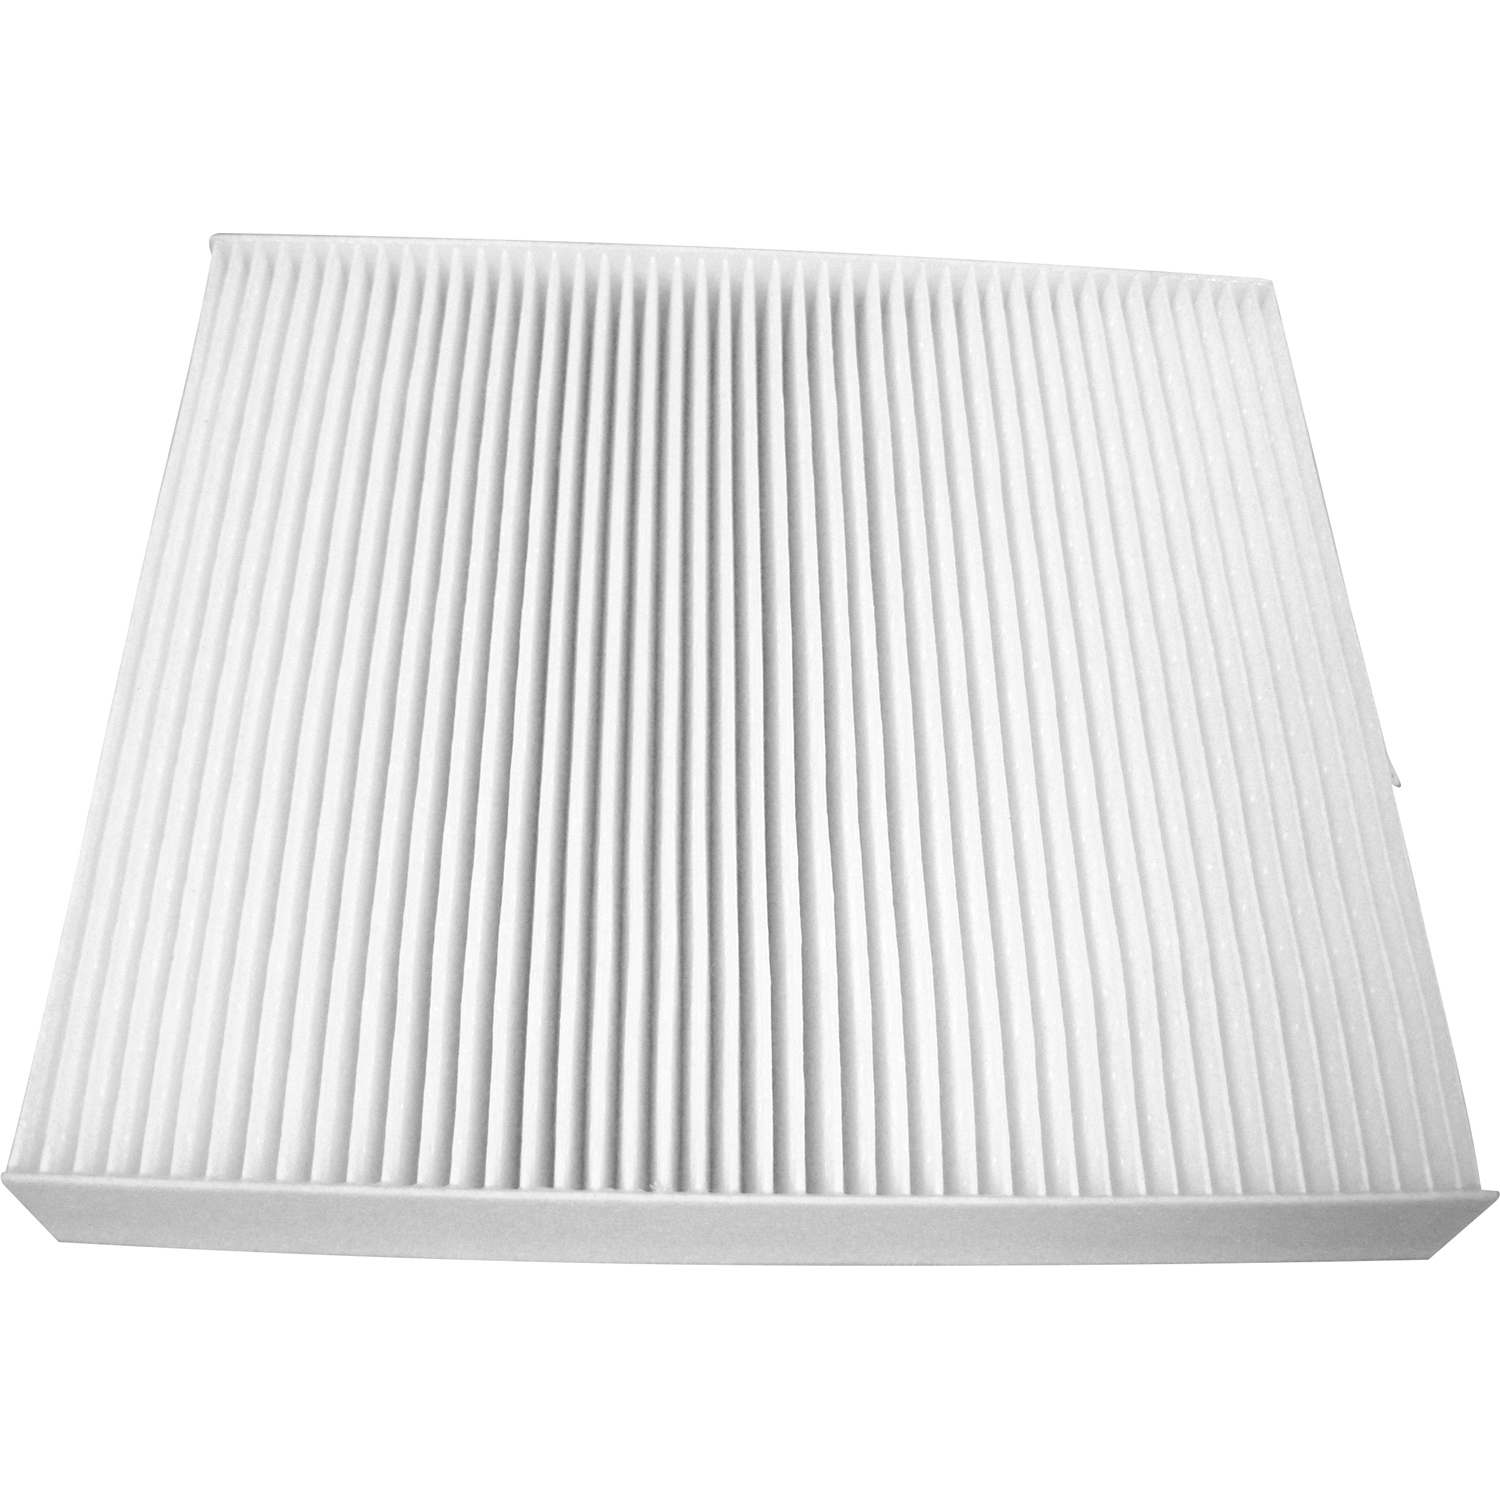 Particulate Cabin Air Filter HOND CRV 00-97